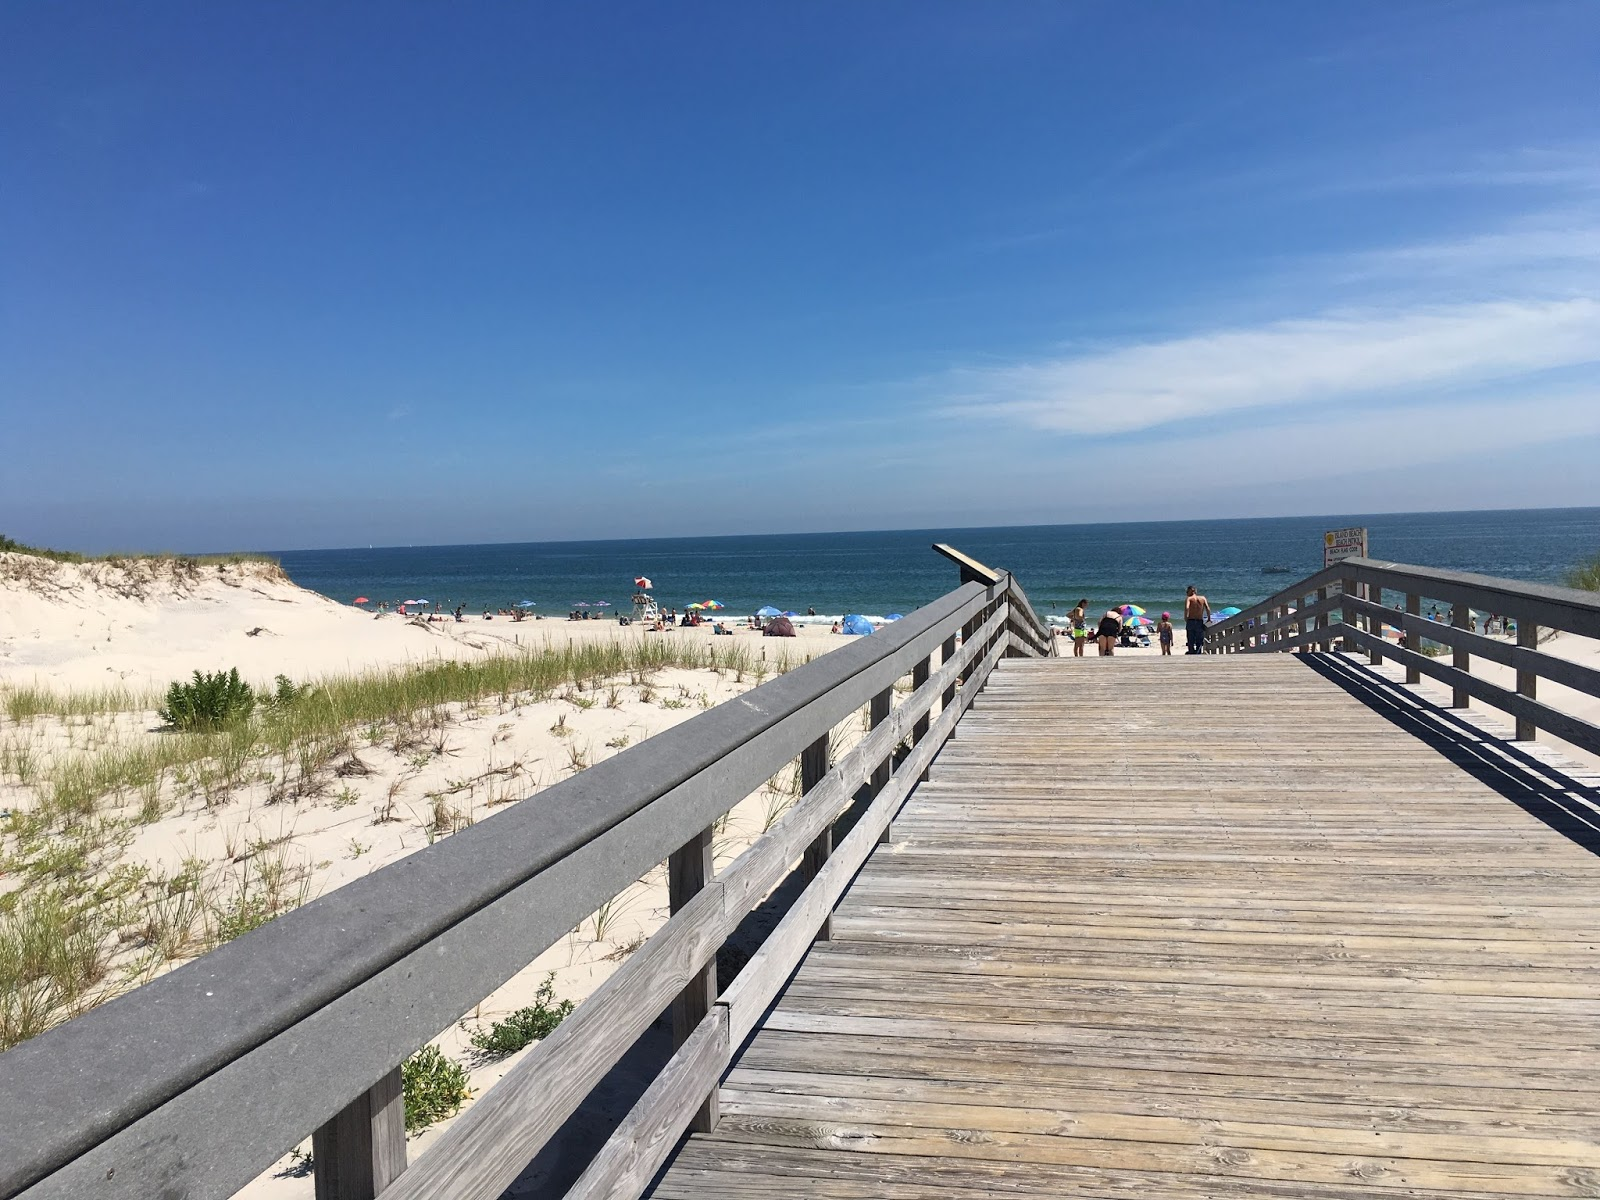 Endangered New Jersey: New Jersey State Parks